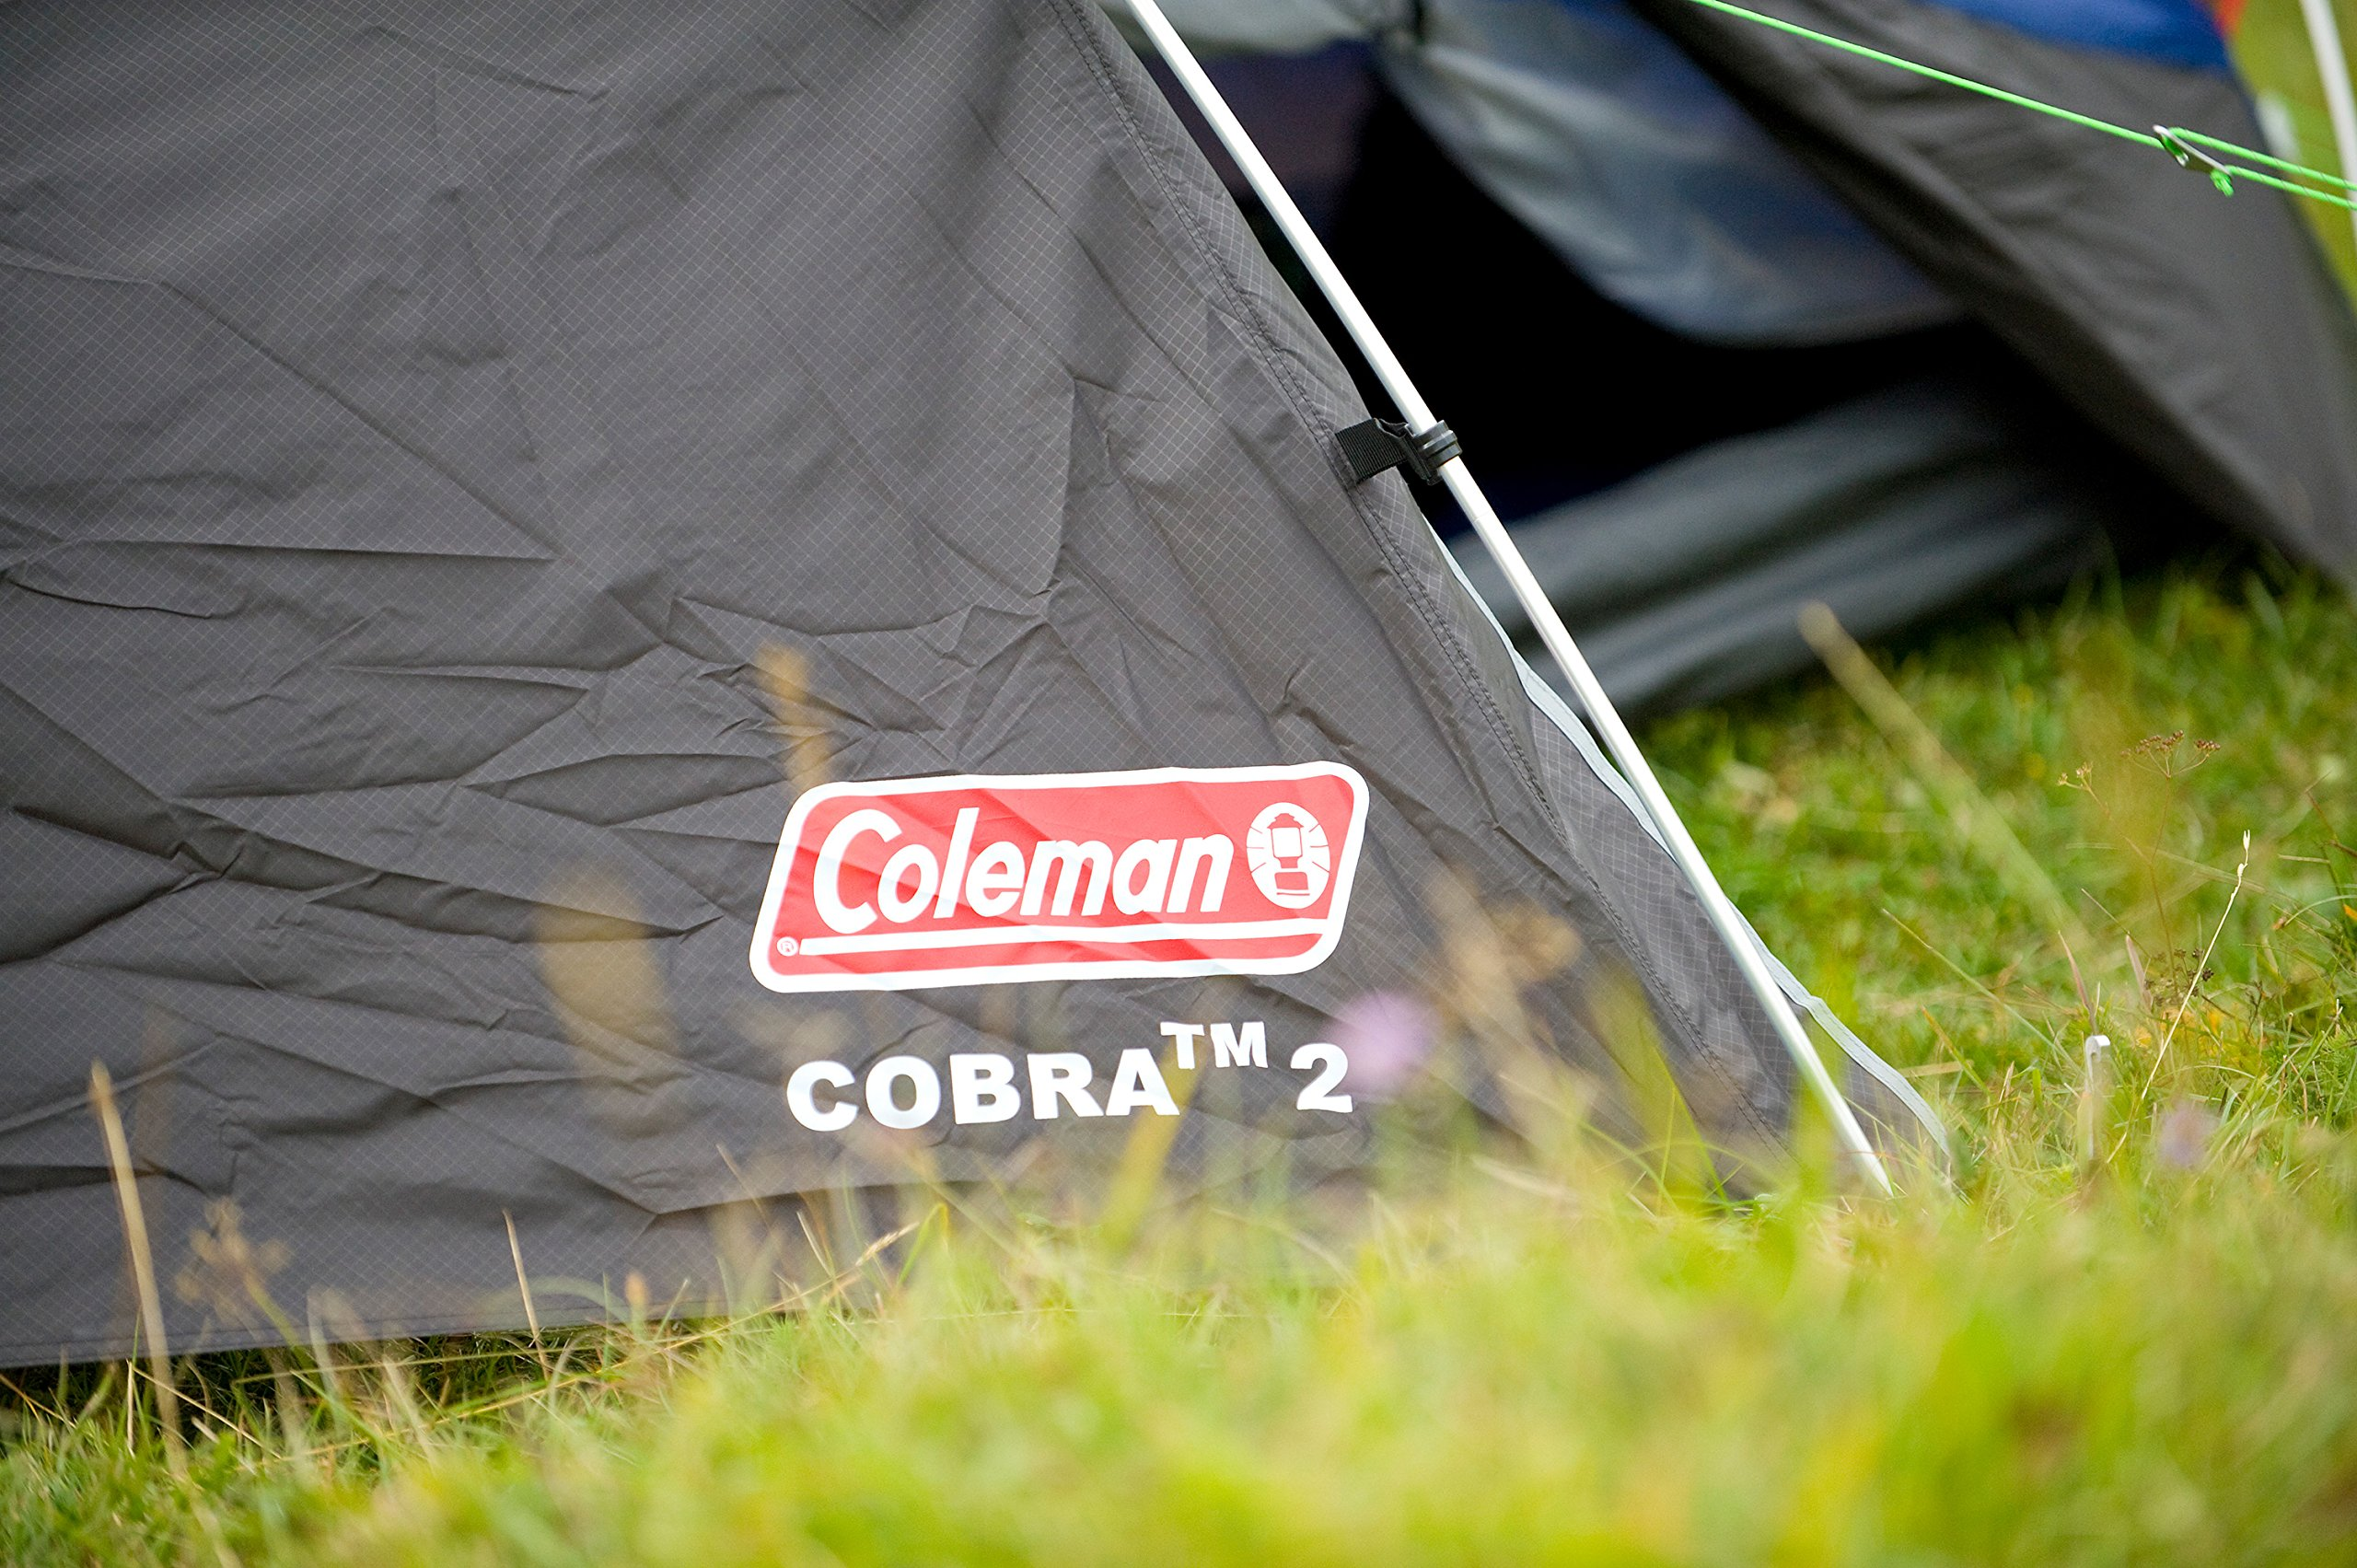 Coleman Cobra 2 Tent for Trekking Tours, Camping or Festivals, Small Pack Size, Fits in a Backpack, Waterproof HH 3.000… 10